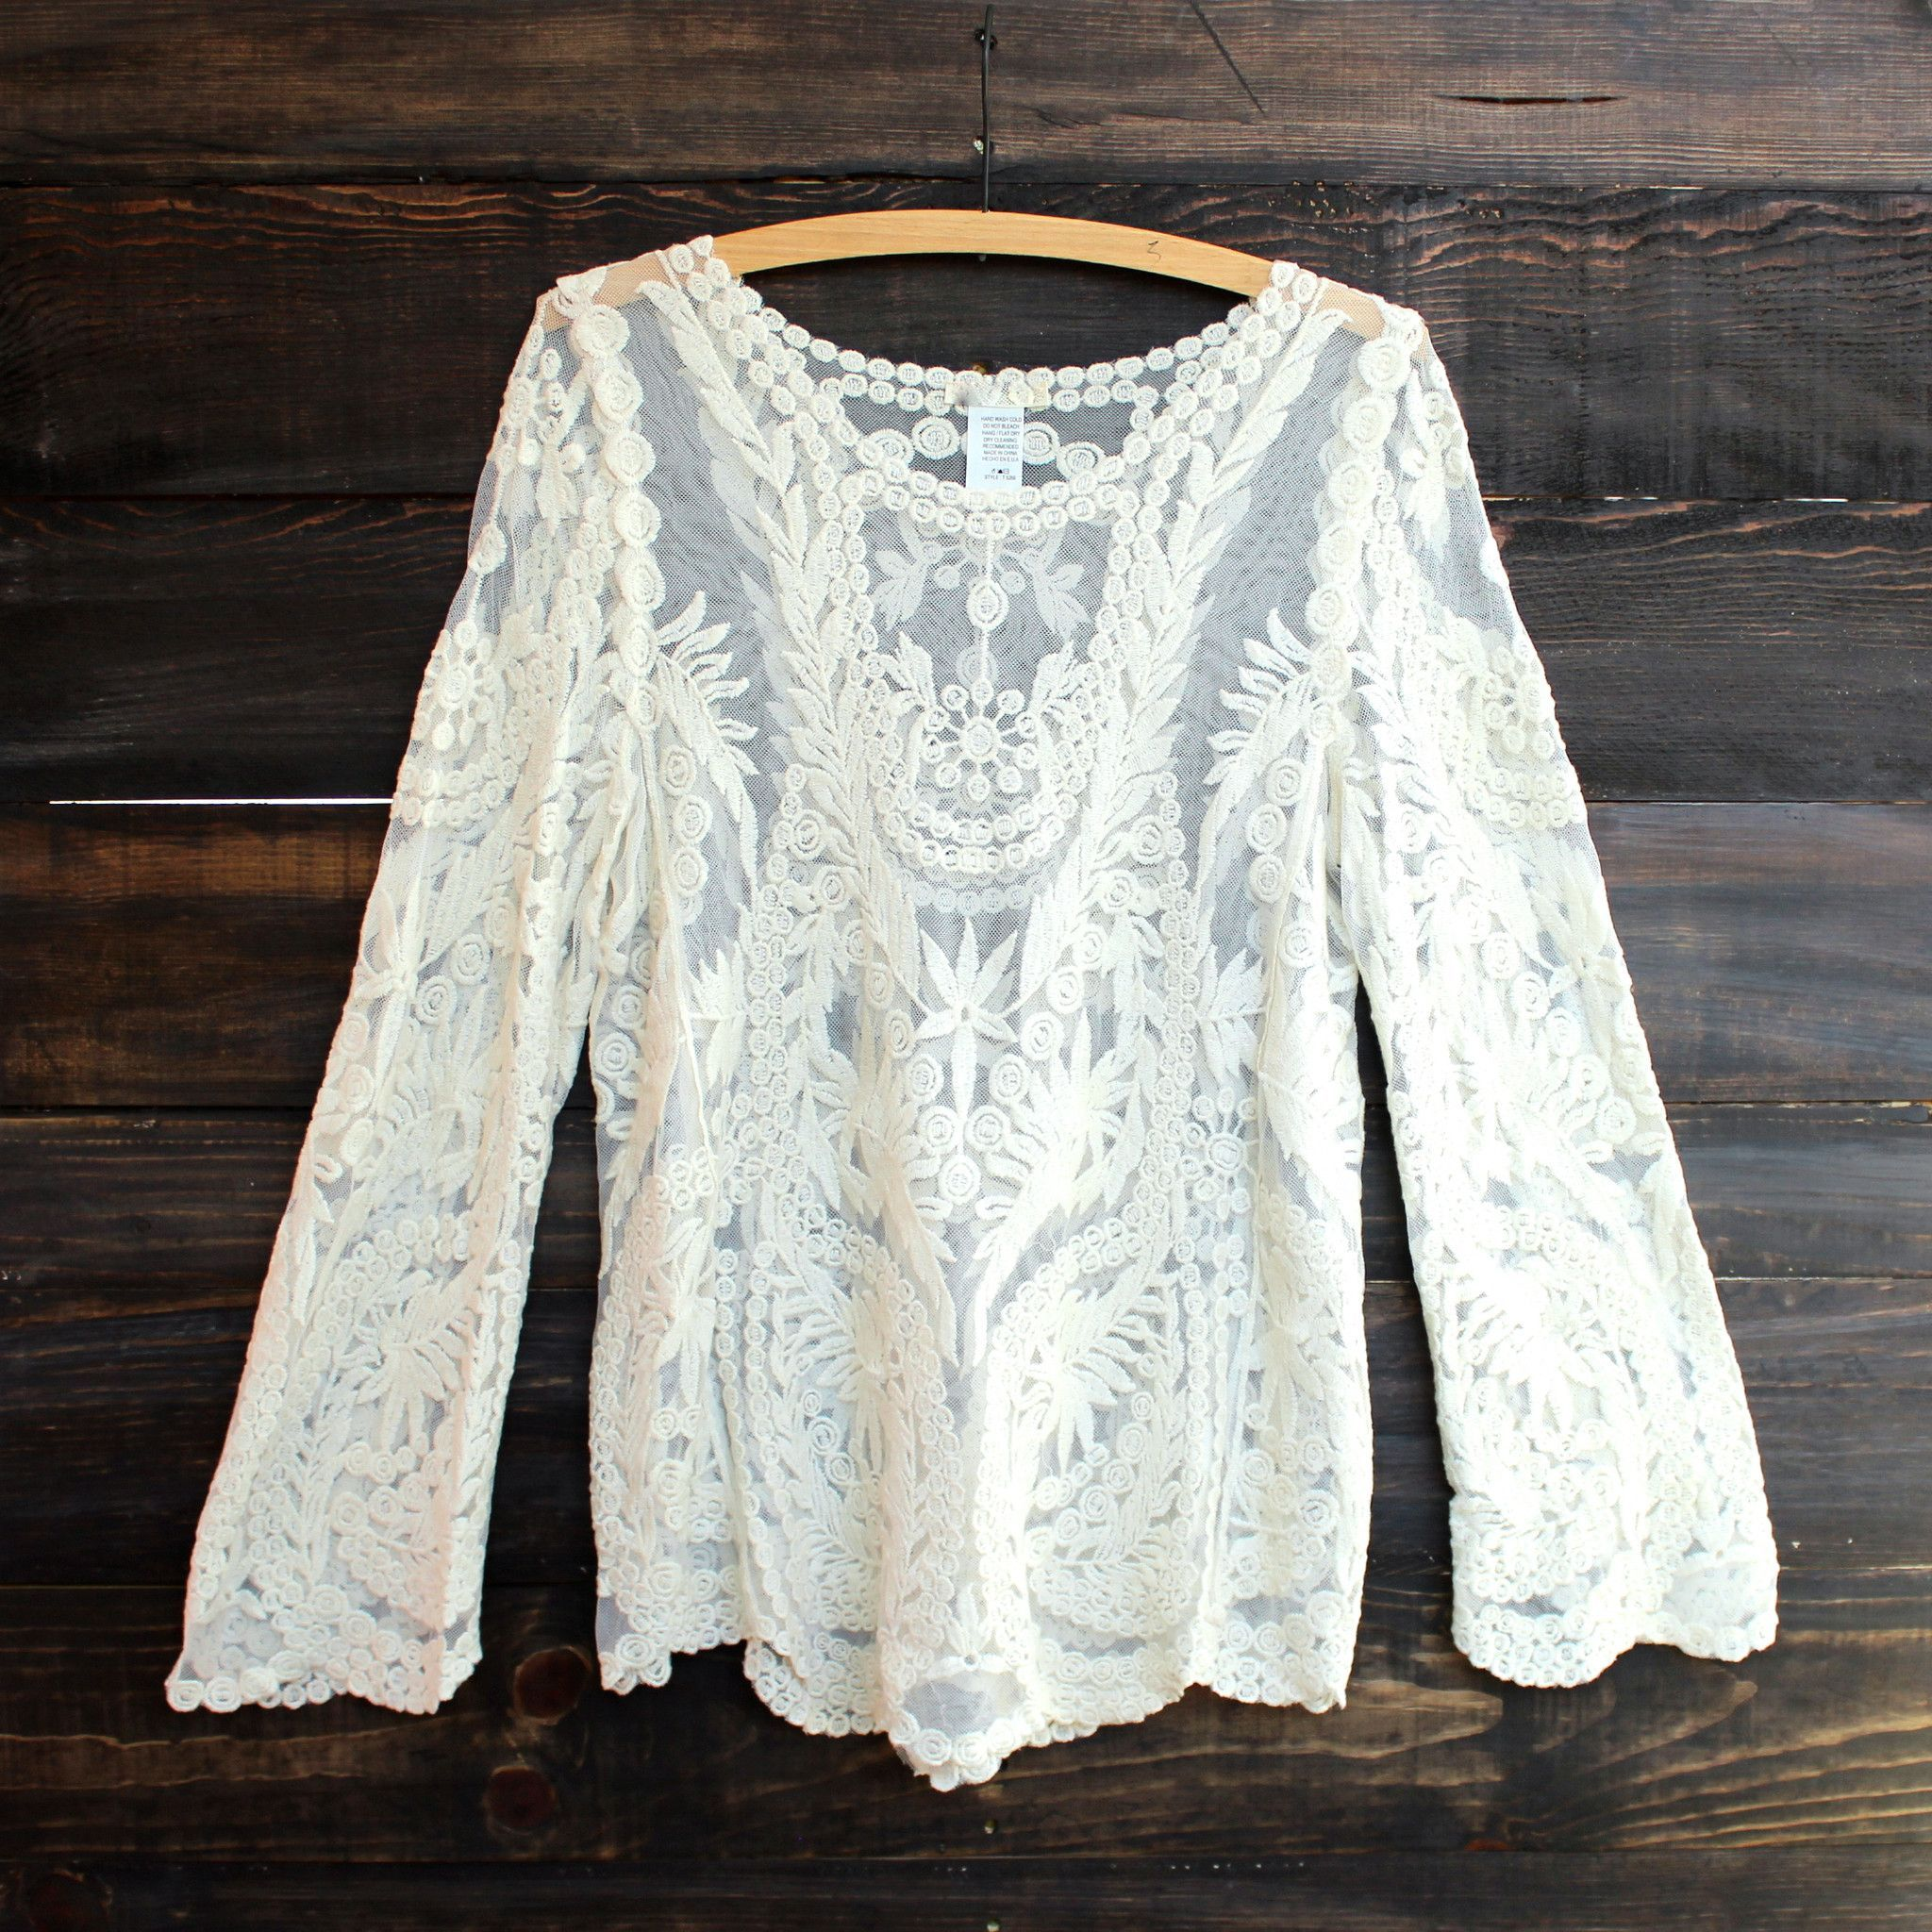 0212b09d018 vintage inspired victorian lace shirt bouse shirts top tops women s  wanderer gypsy bohemian tunic shirt tops boho chic hippie people hipster  free urban ...